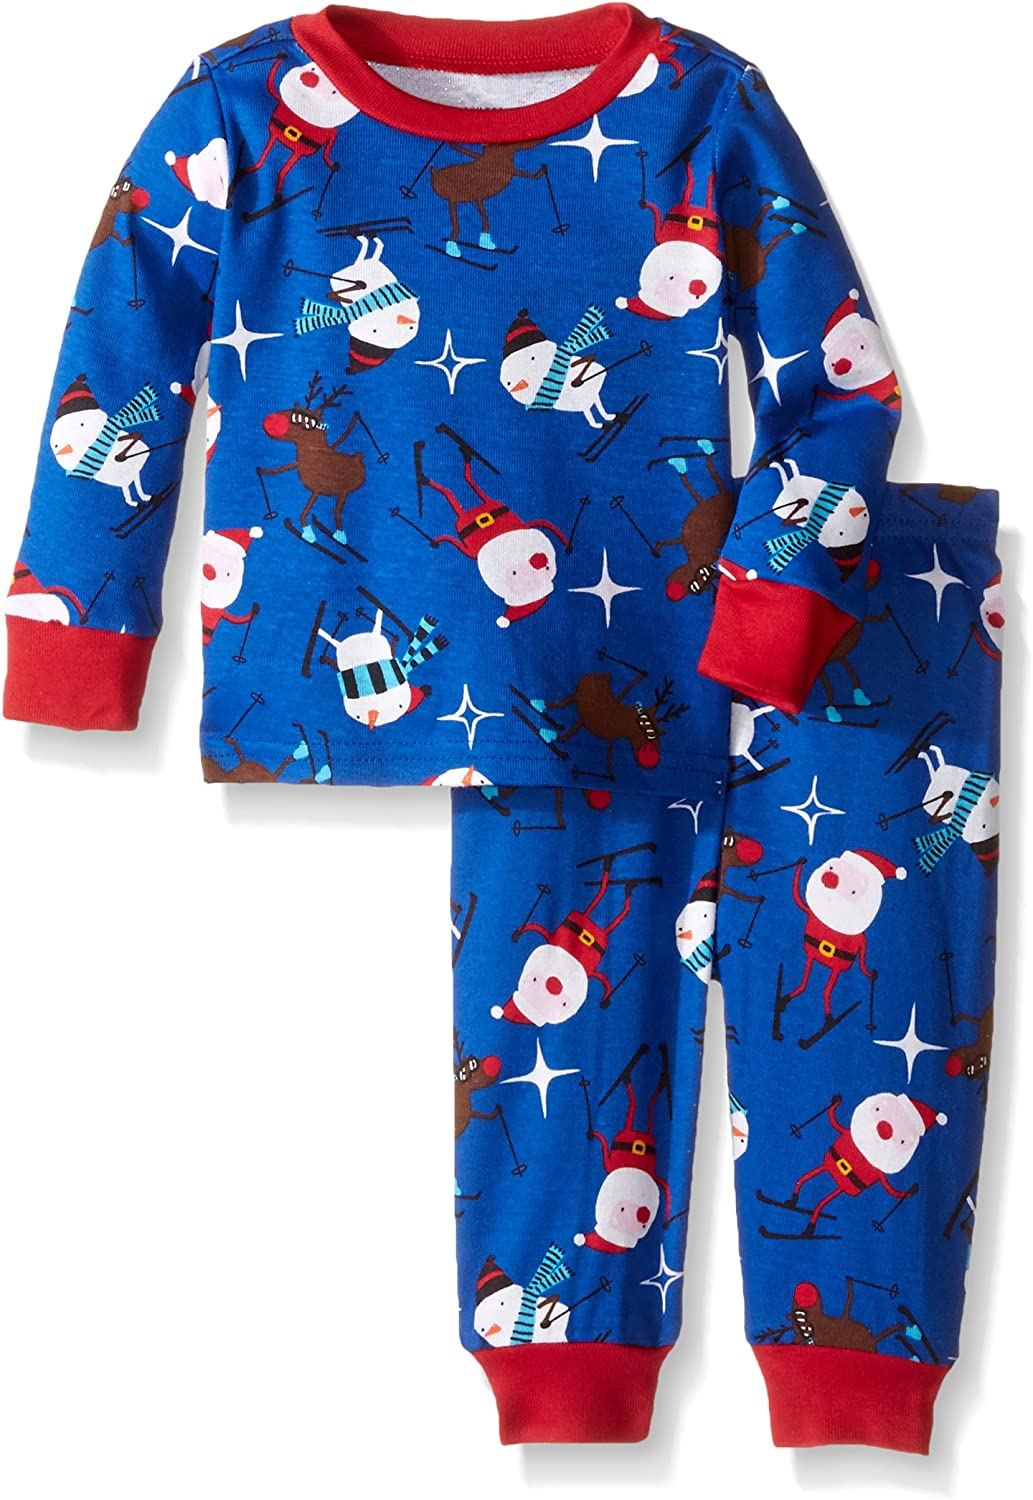 The Childrens Place Boys Super Baby Long Sleeve Pants Set